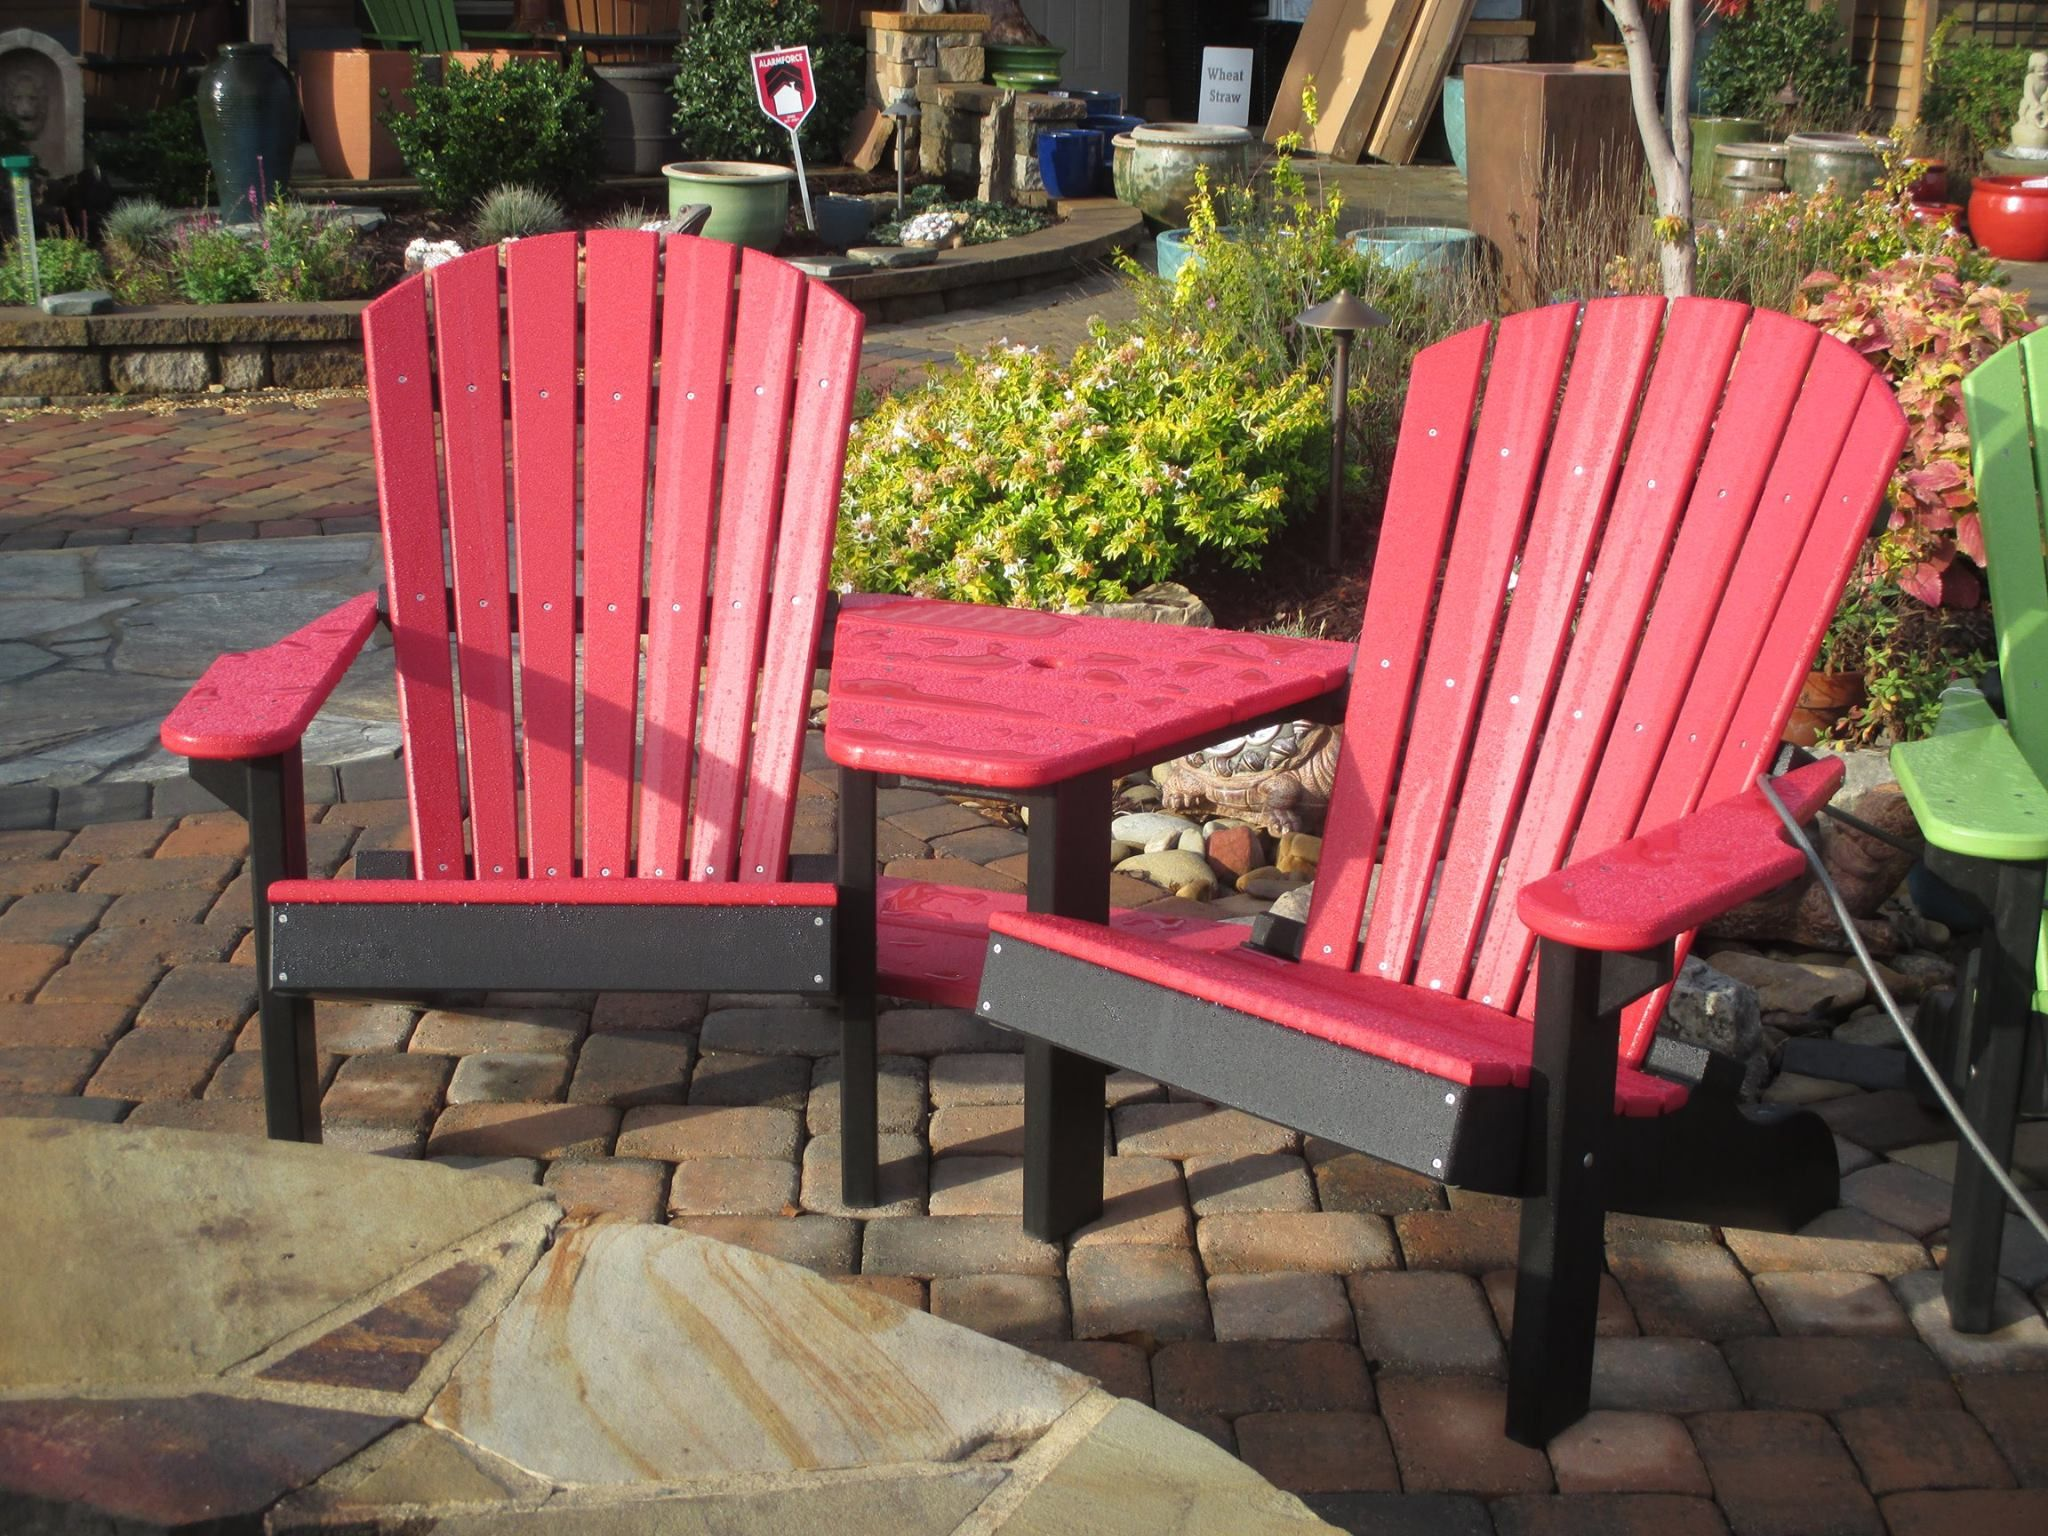 Red Trimmed In Black Adirondack Chair Set With Table That Includes Umbrella  Hole